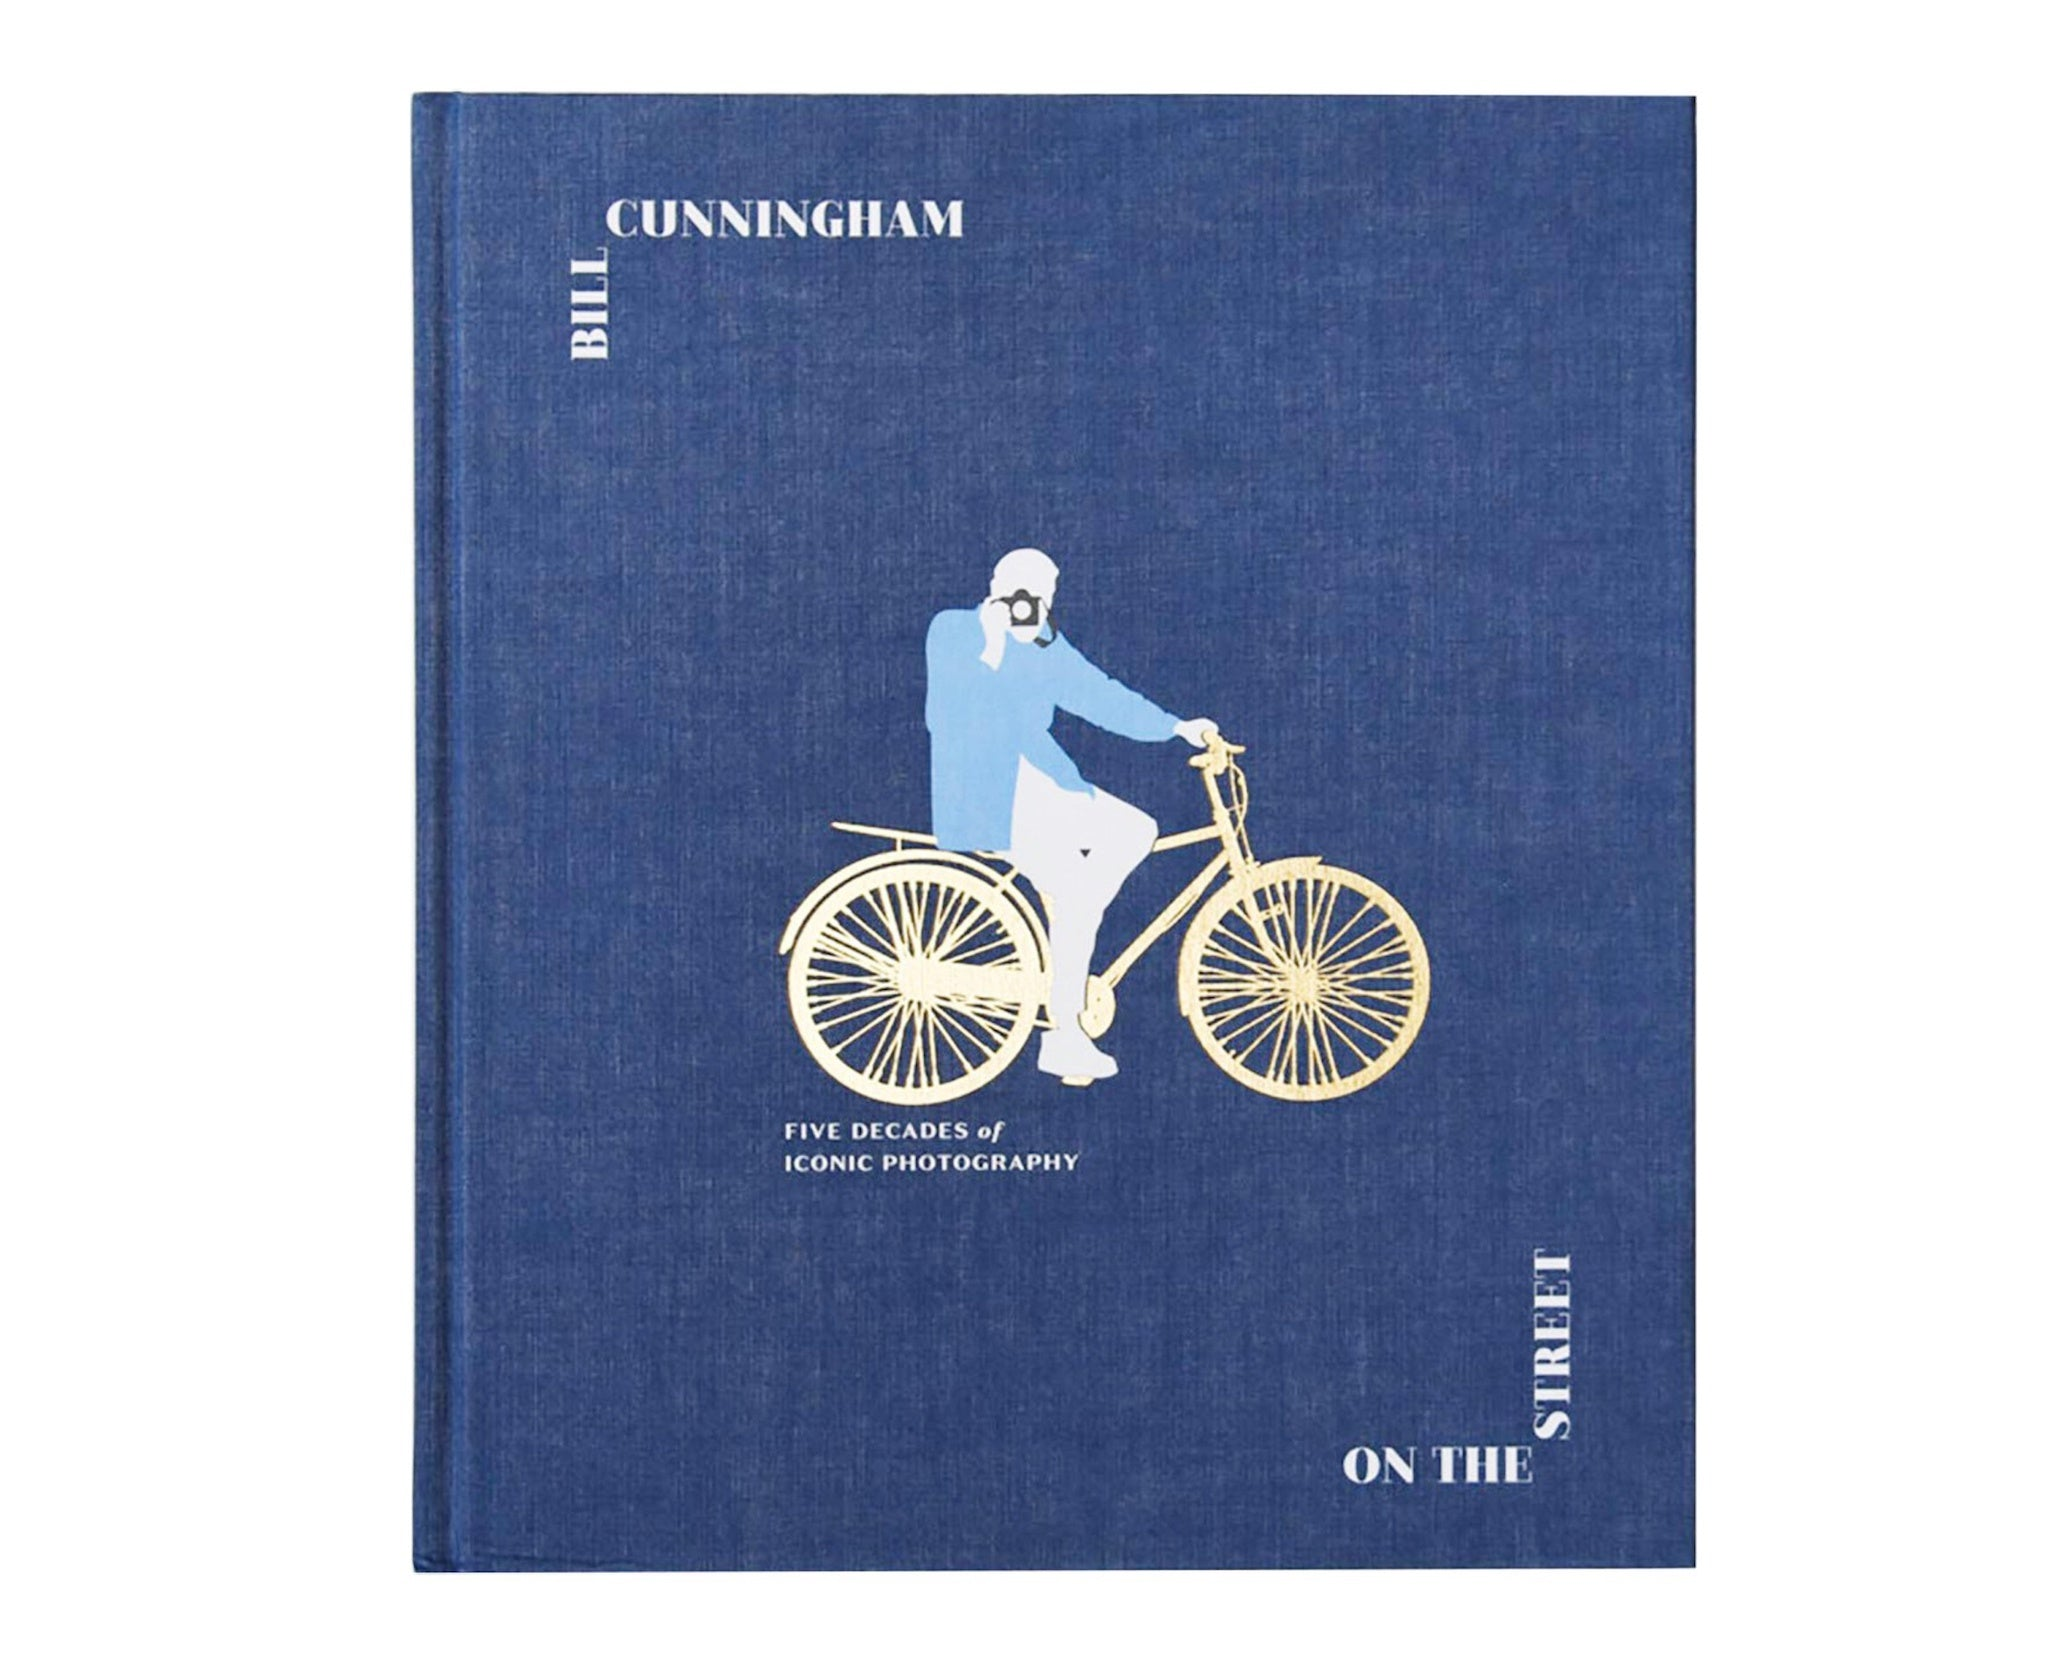 Books Bill Cunningham: On the Street